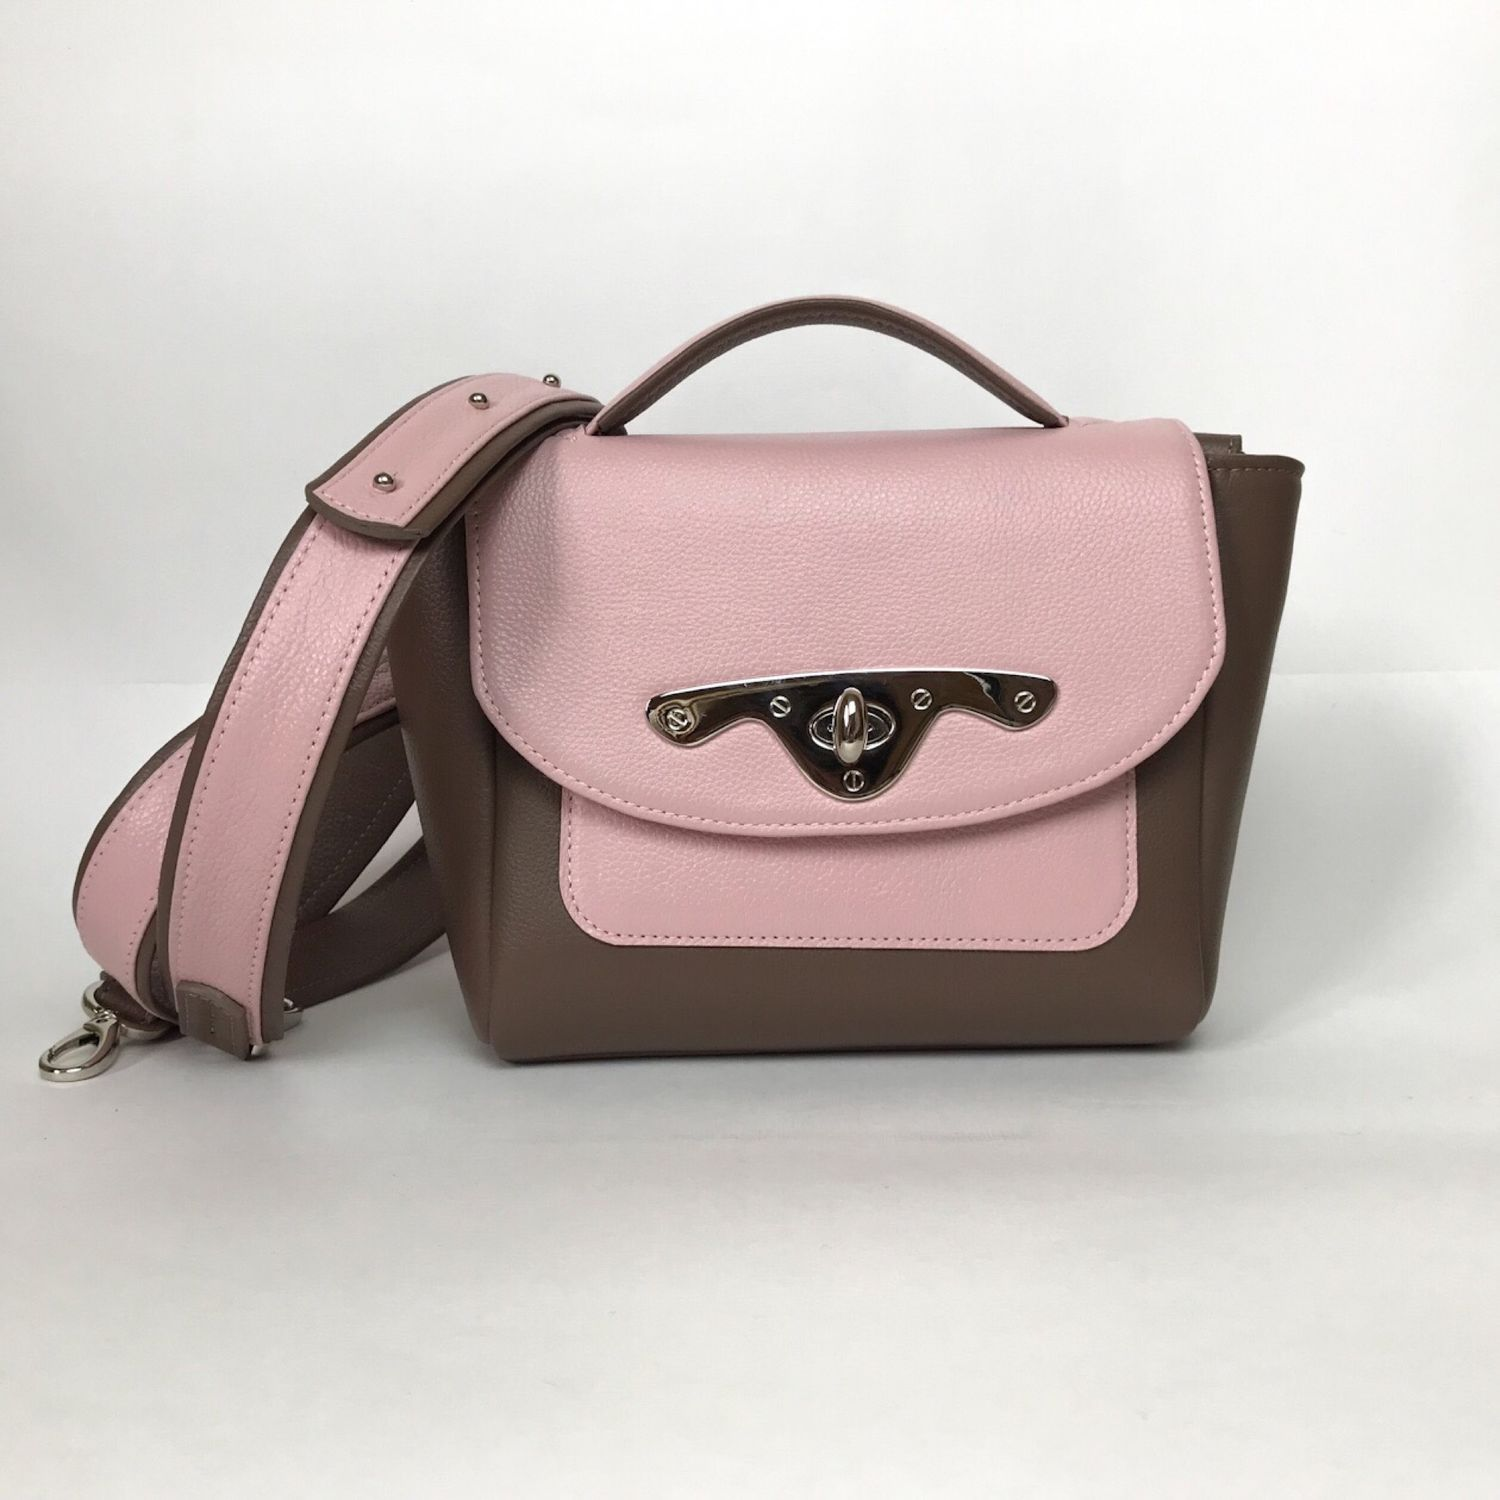 b2aa39884 Bag Handbags handmade. Bag of genuine leather cappuccino pink. MiTonA.  Online shopping on My ...